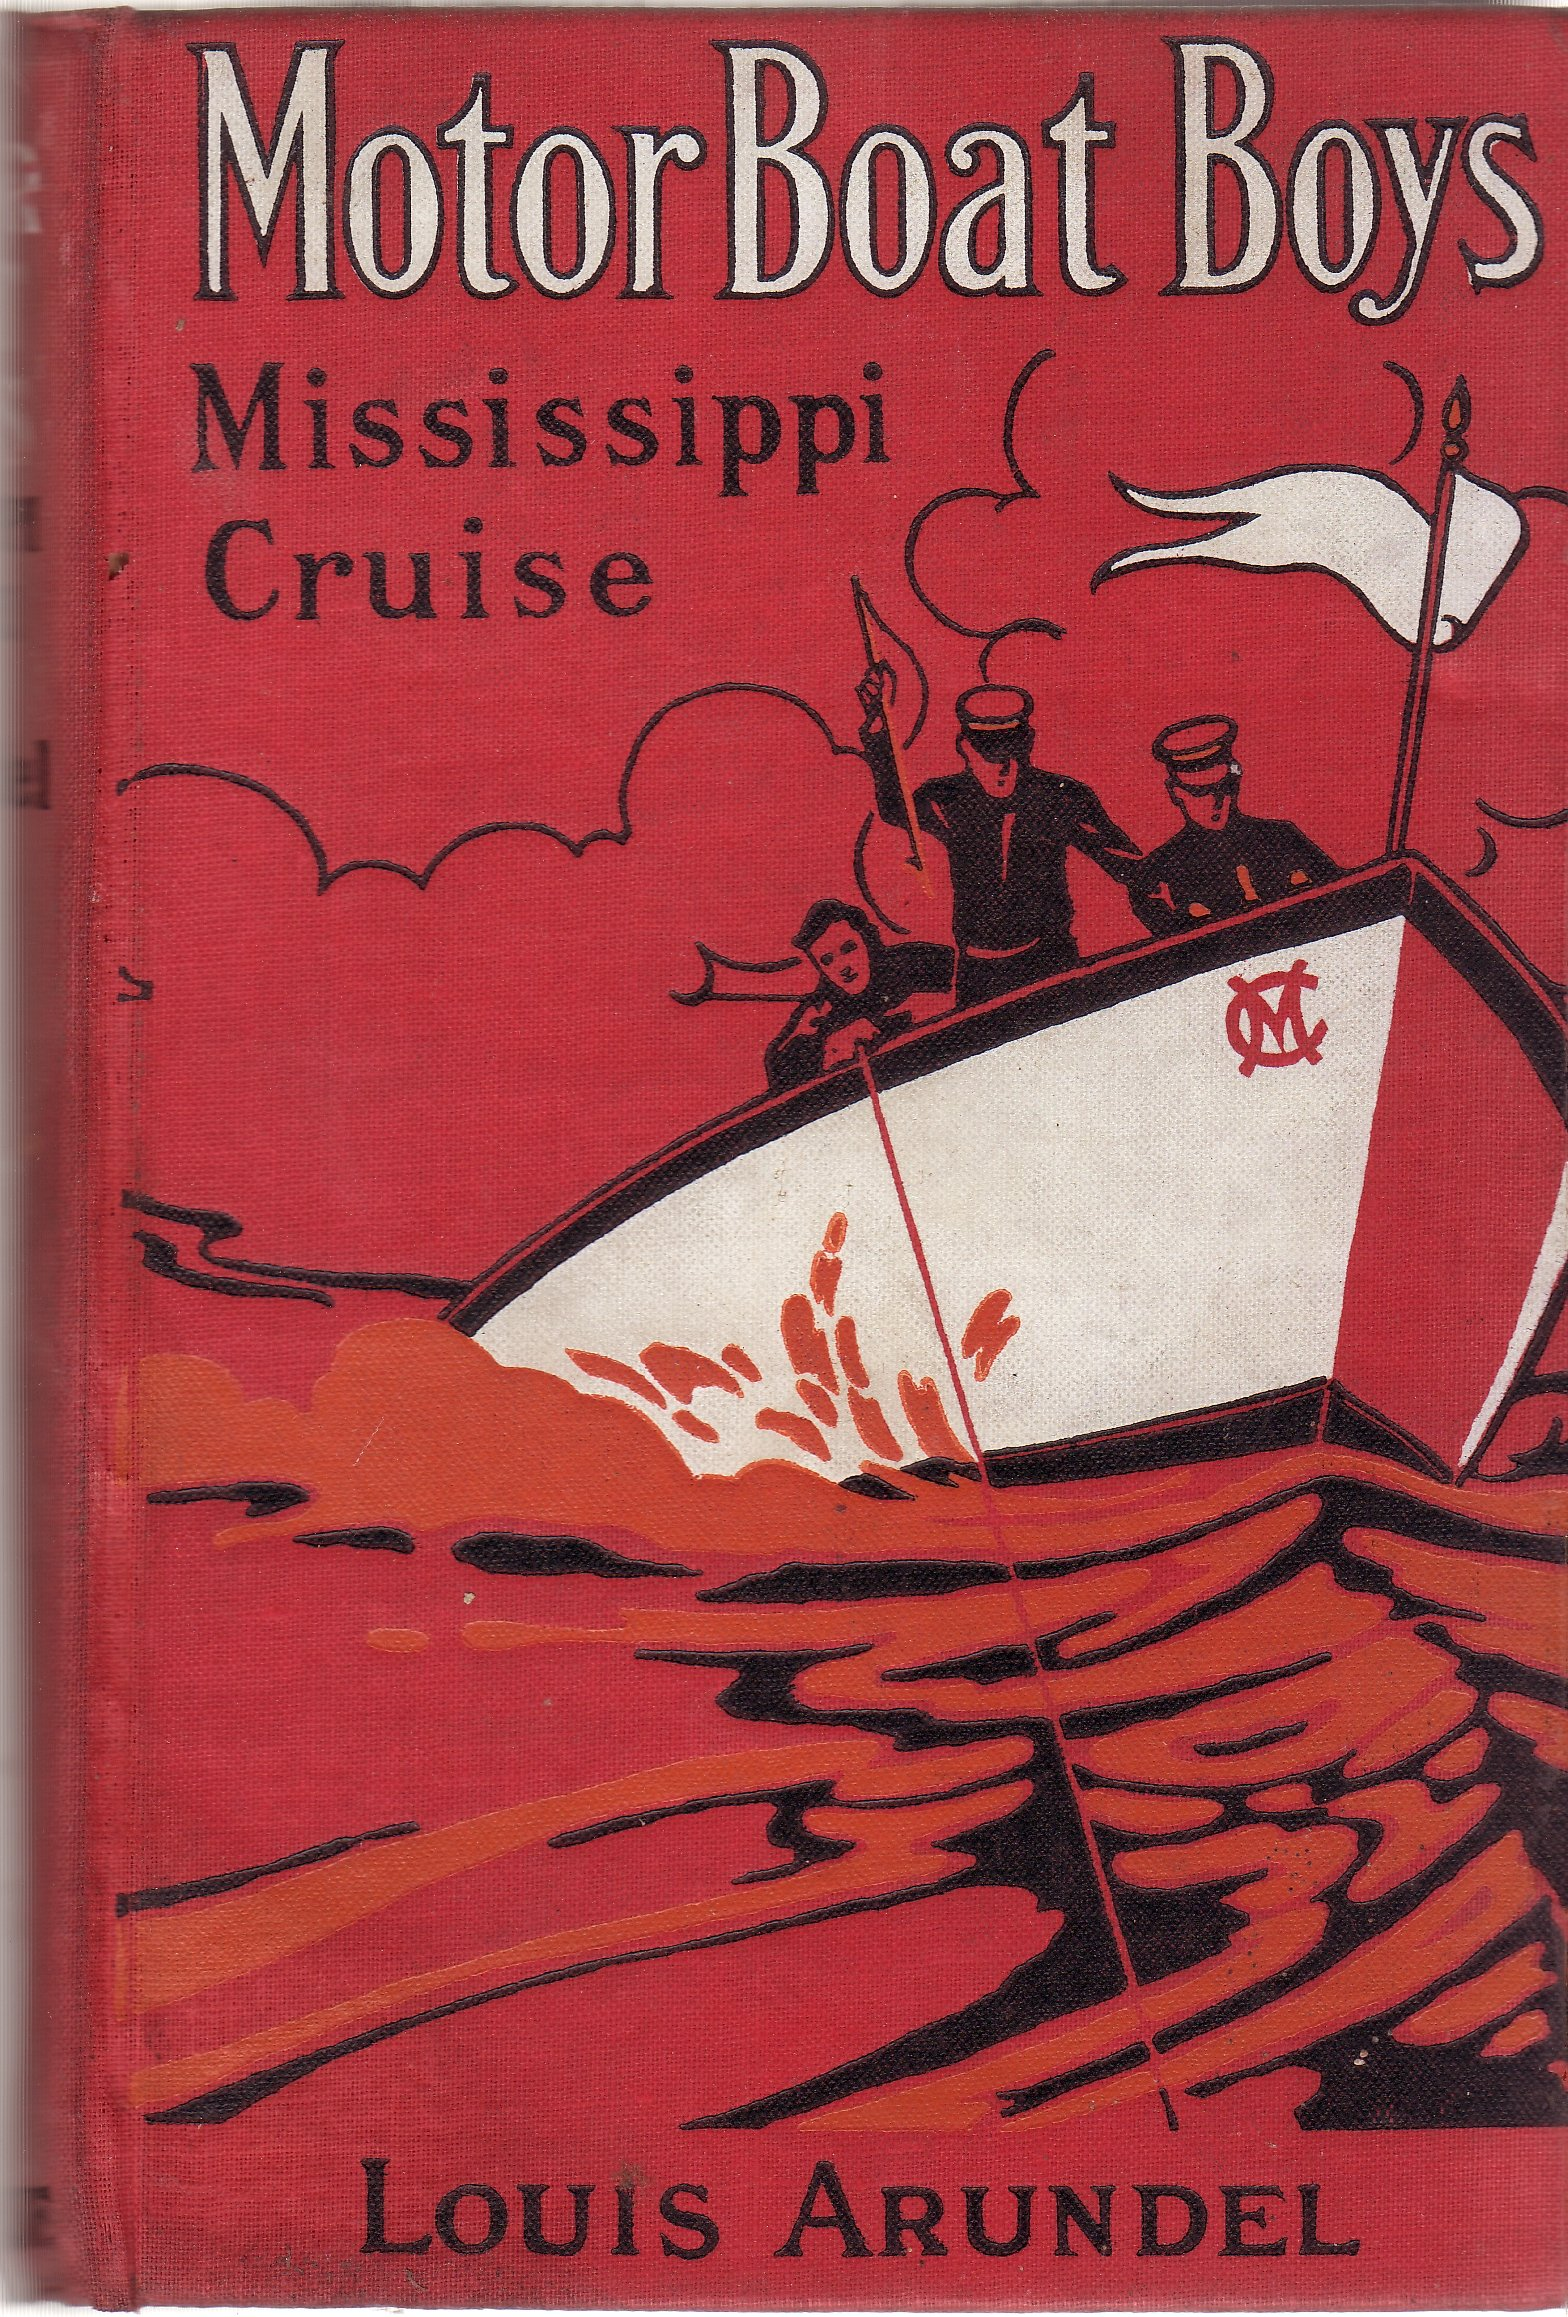 Motor Boat Boys: Mississippi Cruise, or The Dash for Dixie